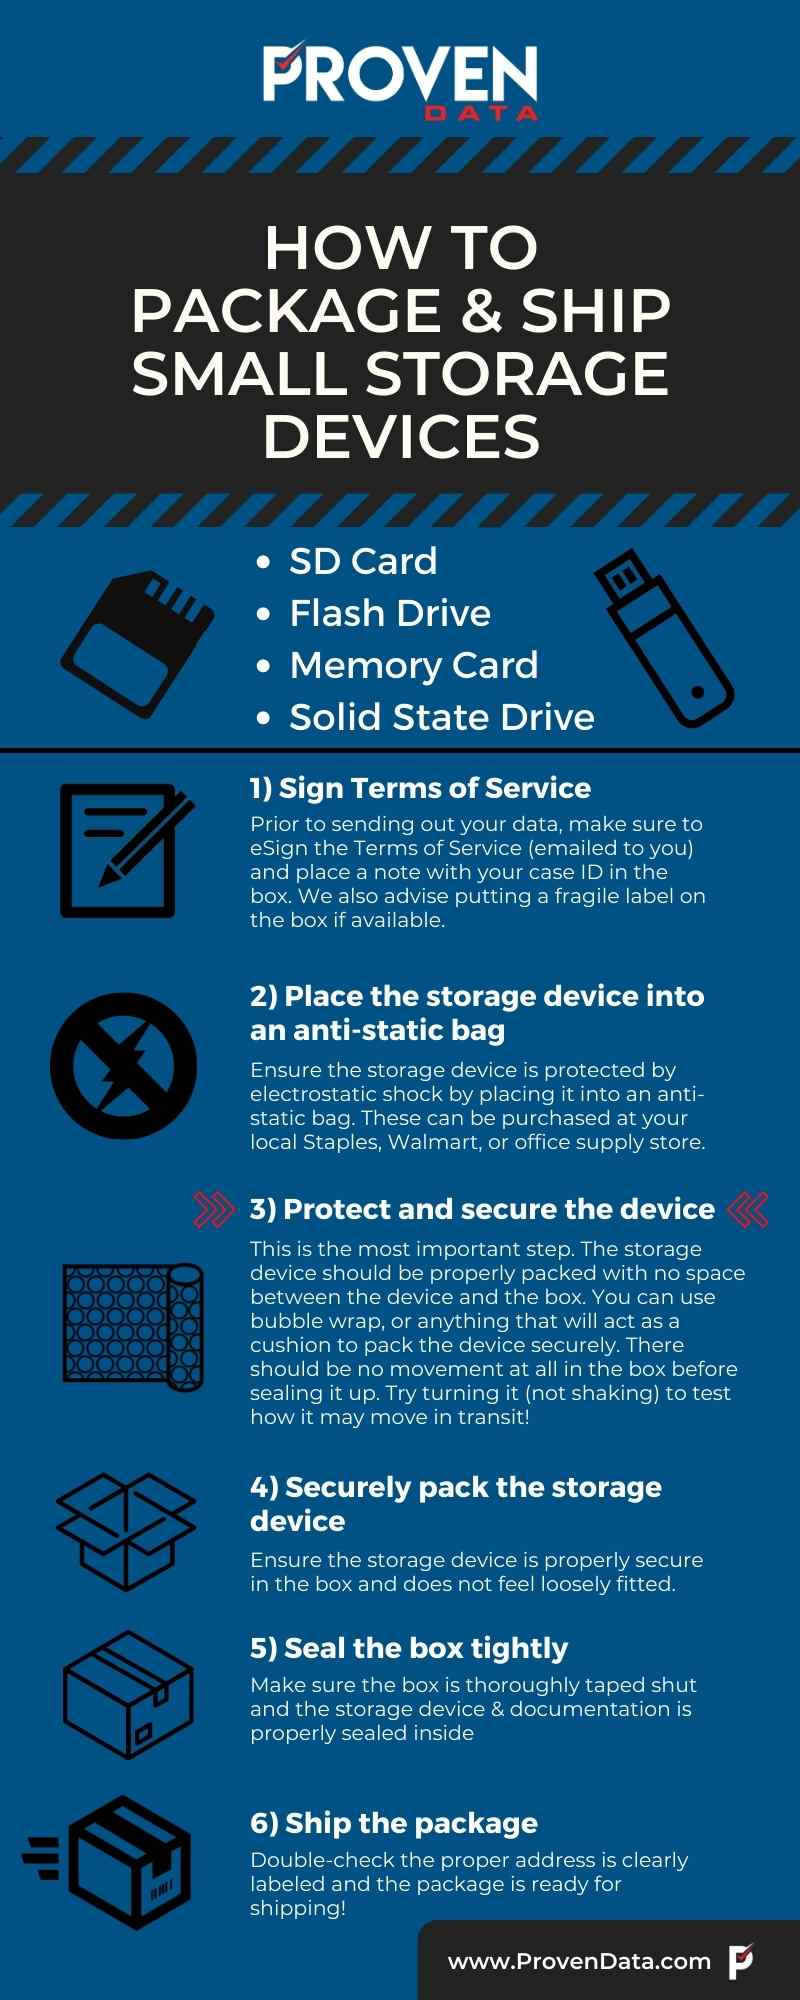 How to Package and Ship a Small Storage Device